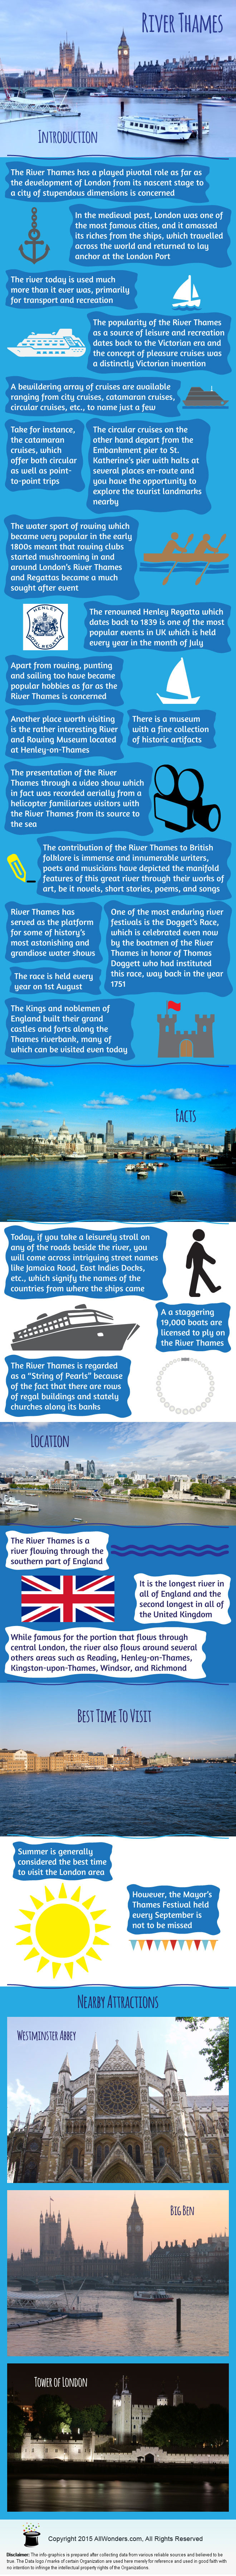 Infographic showing Facts and Information about River Thames